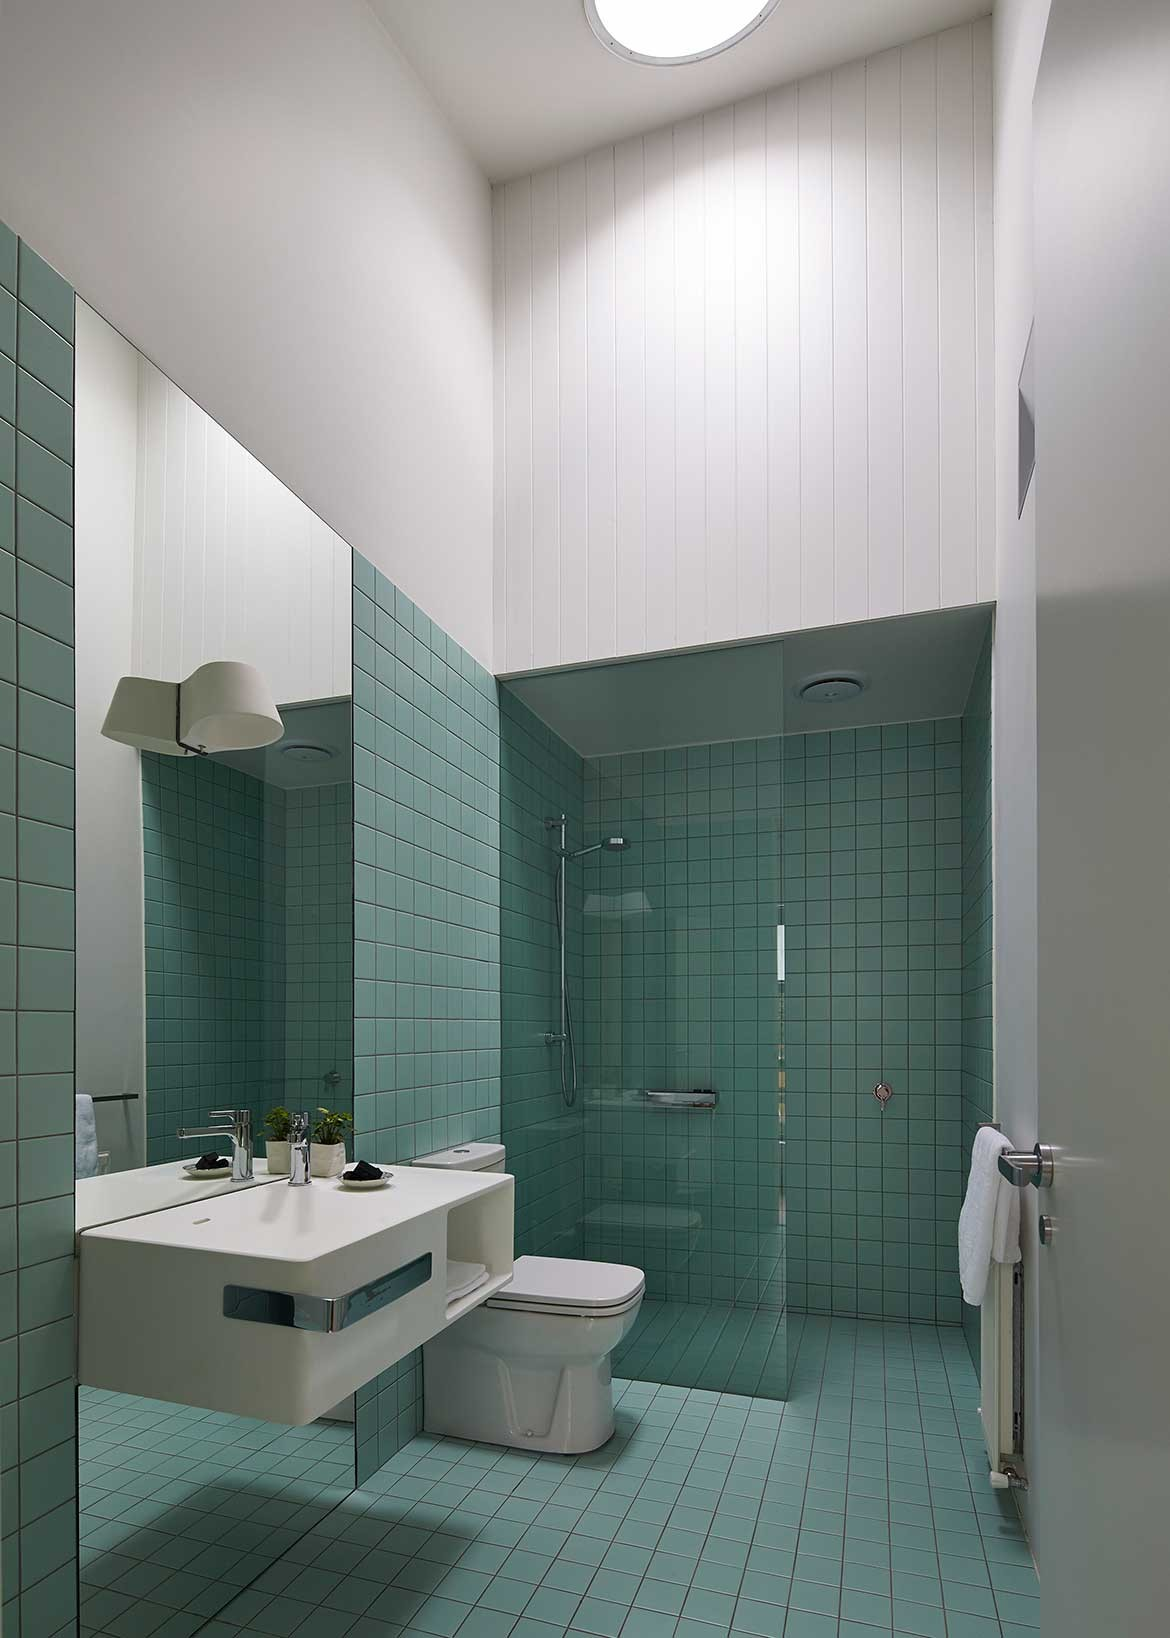 Sonelo Design Theresa St Residence bathroom